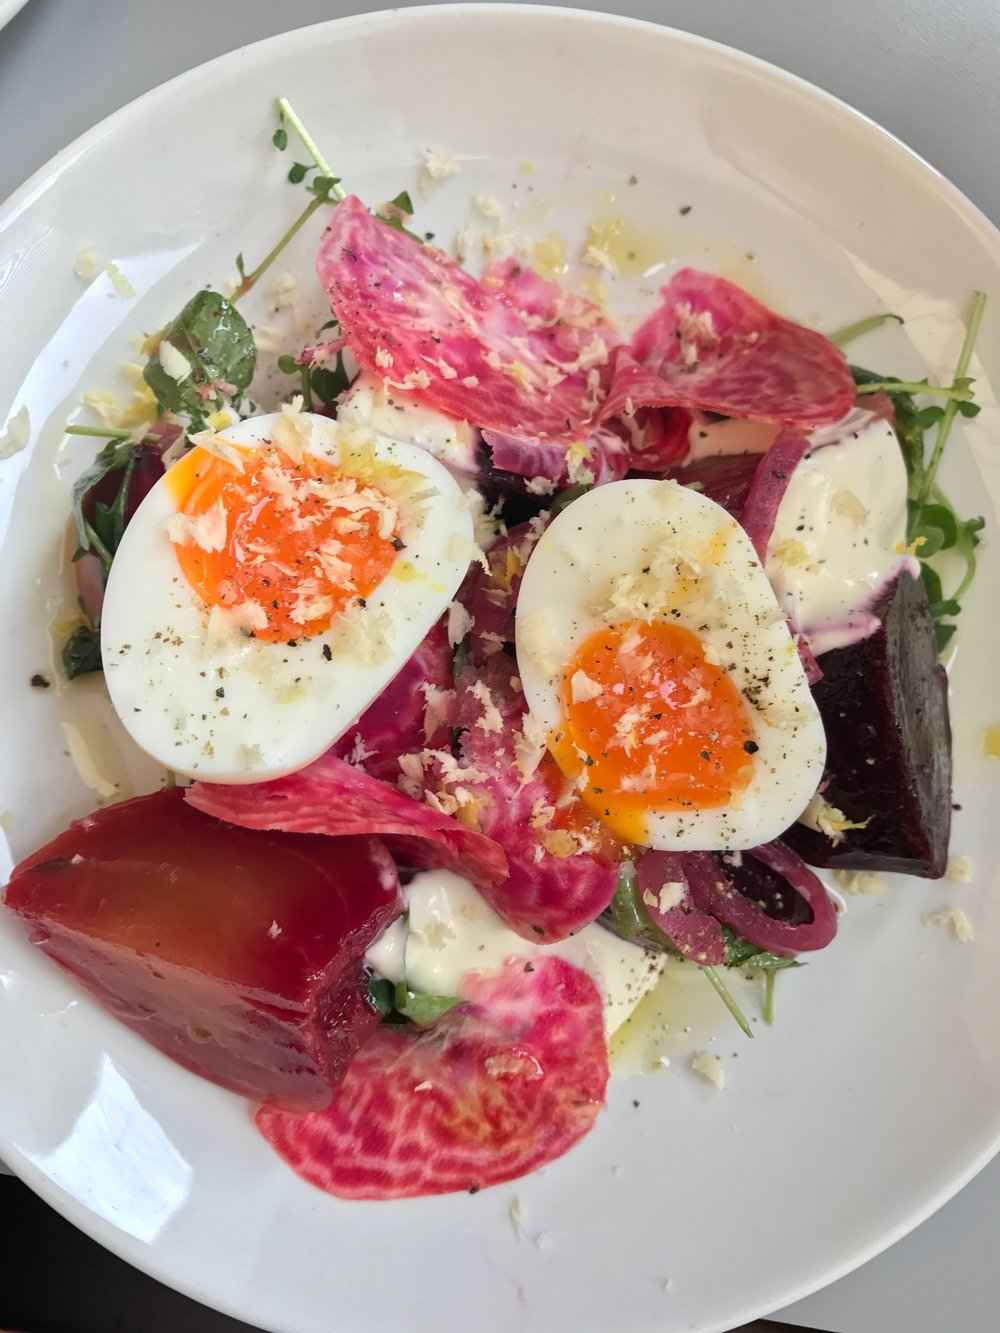 Beetroot, soft boiled egg, horseradish and créme fraiche